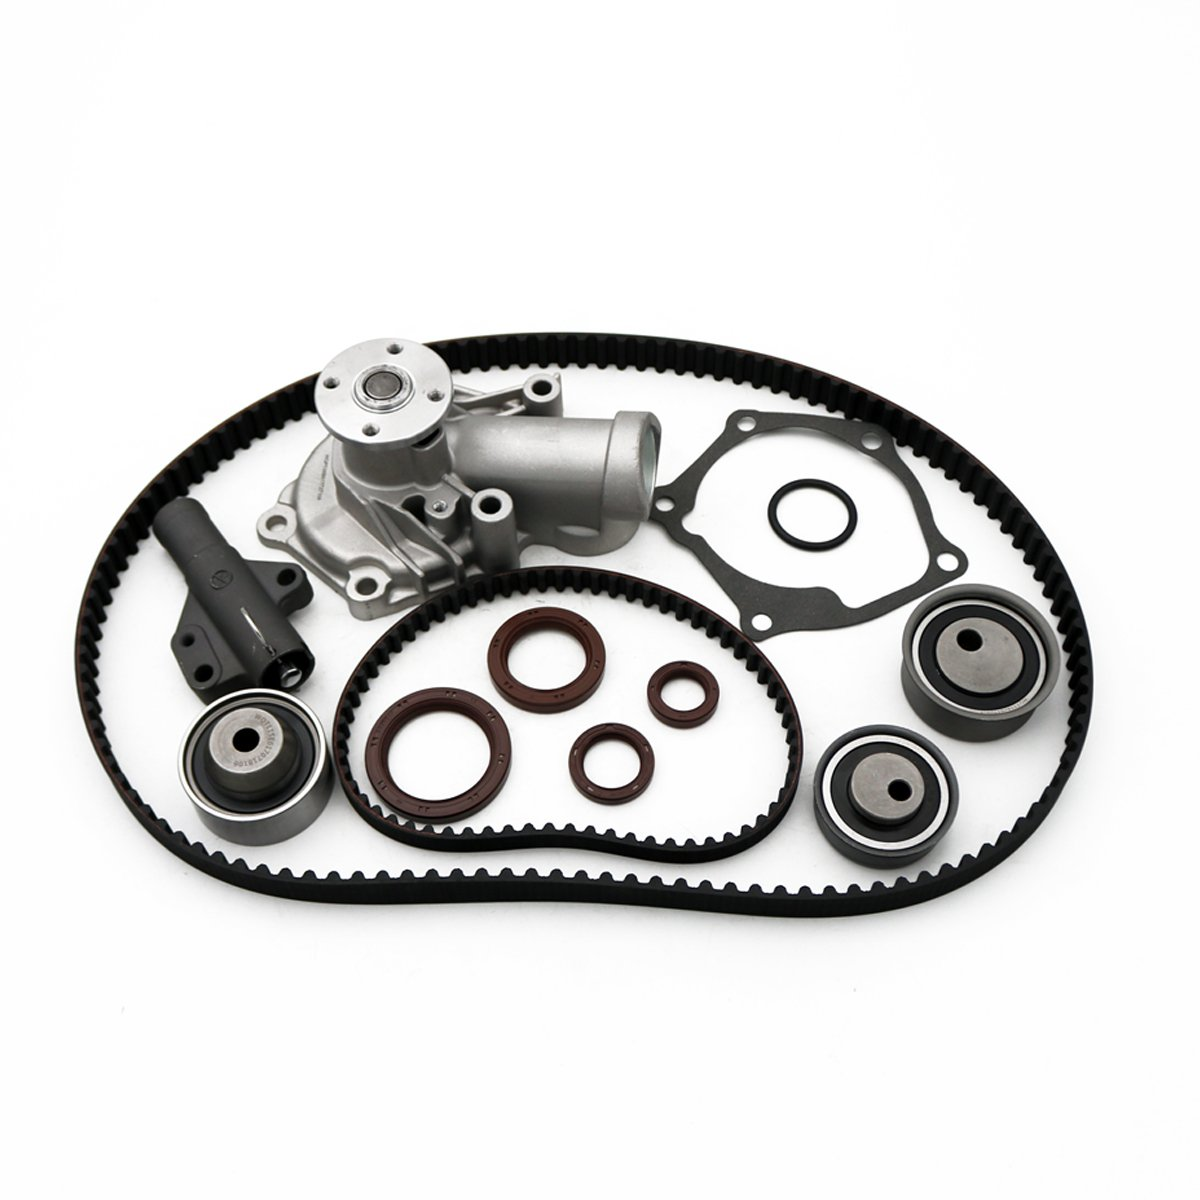 2004-2006 Lancer 2006 2007 Eclipse 2.4L SOHC Timing Belt Water Pump Kit fits for 2004 2005 2006 Mitsubishi Galant